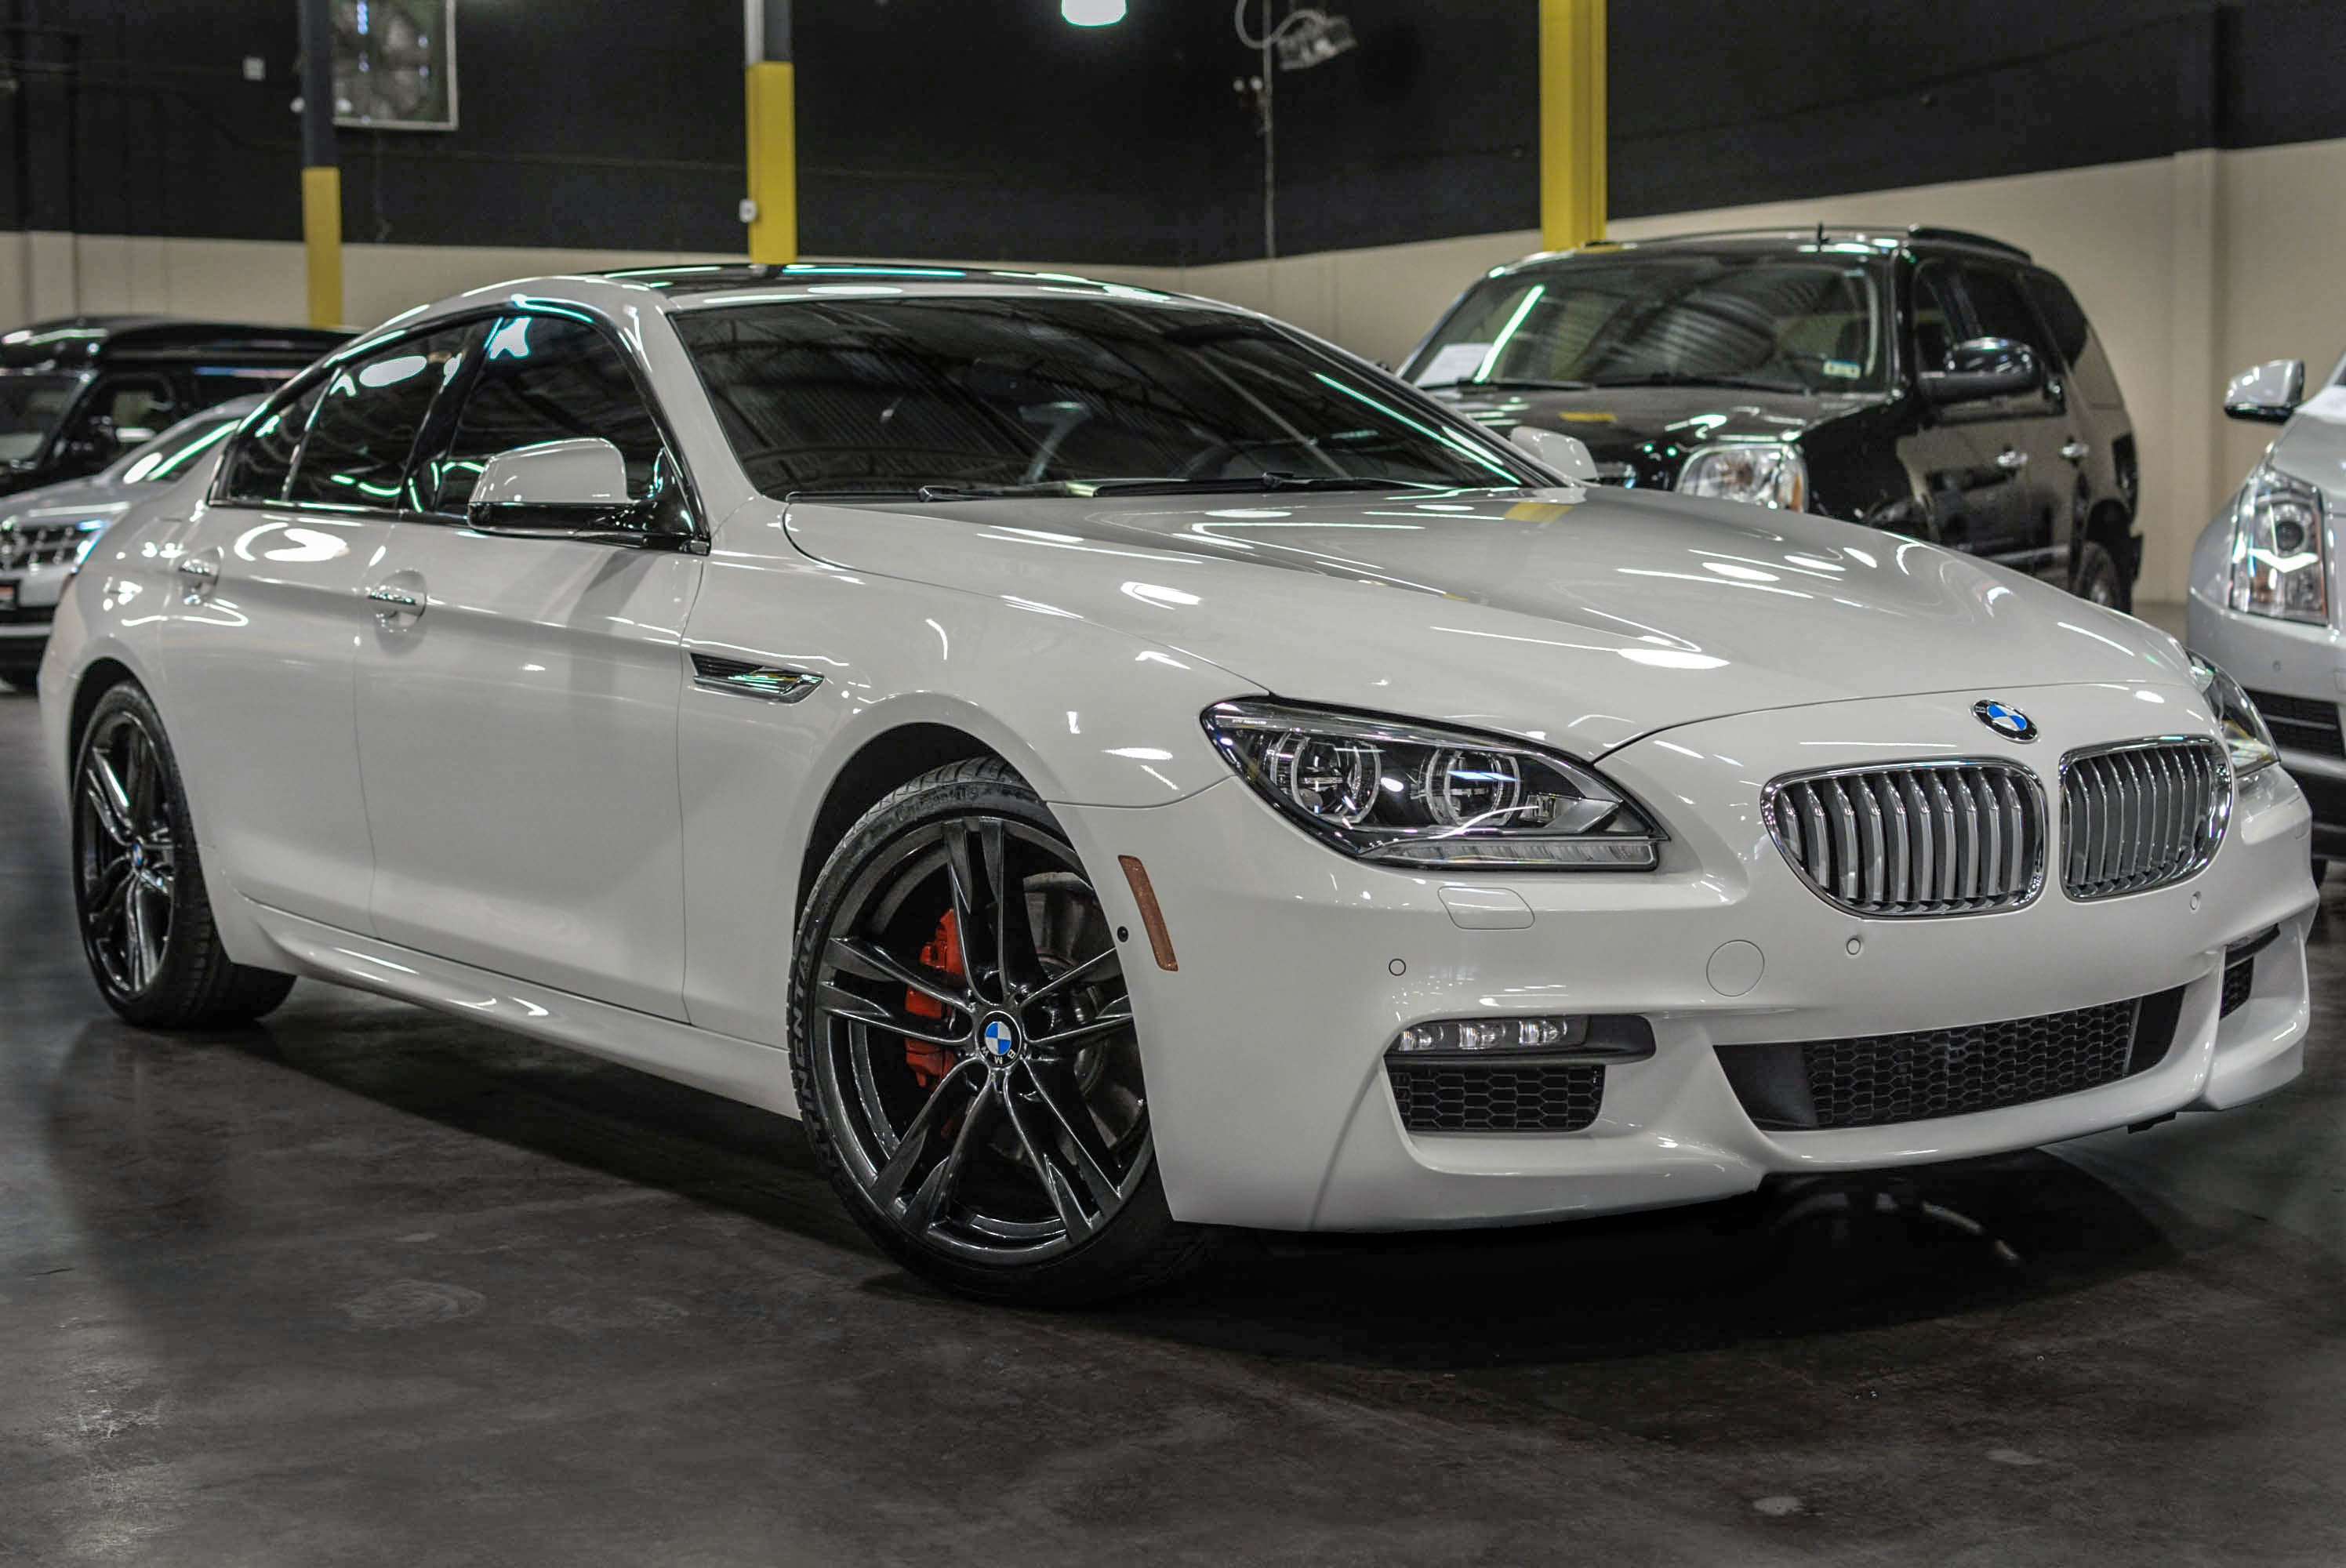 Bmw Used Cars Unique 2014 Bmw 650i Gran Coupe Used Cars Dallas Tx 2014 11 30 Youtube